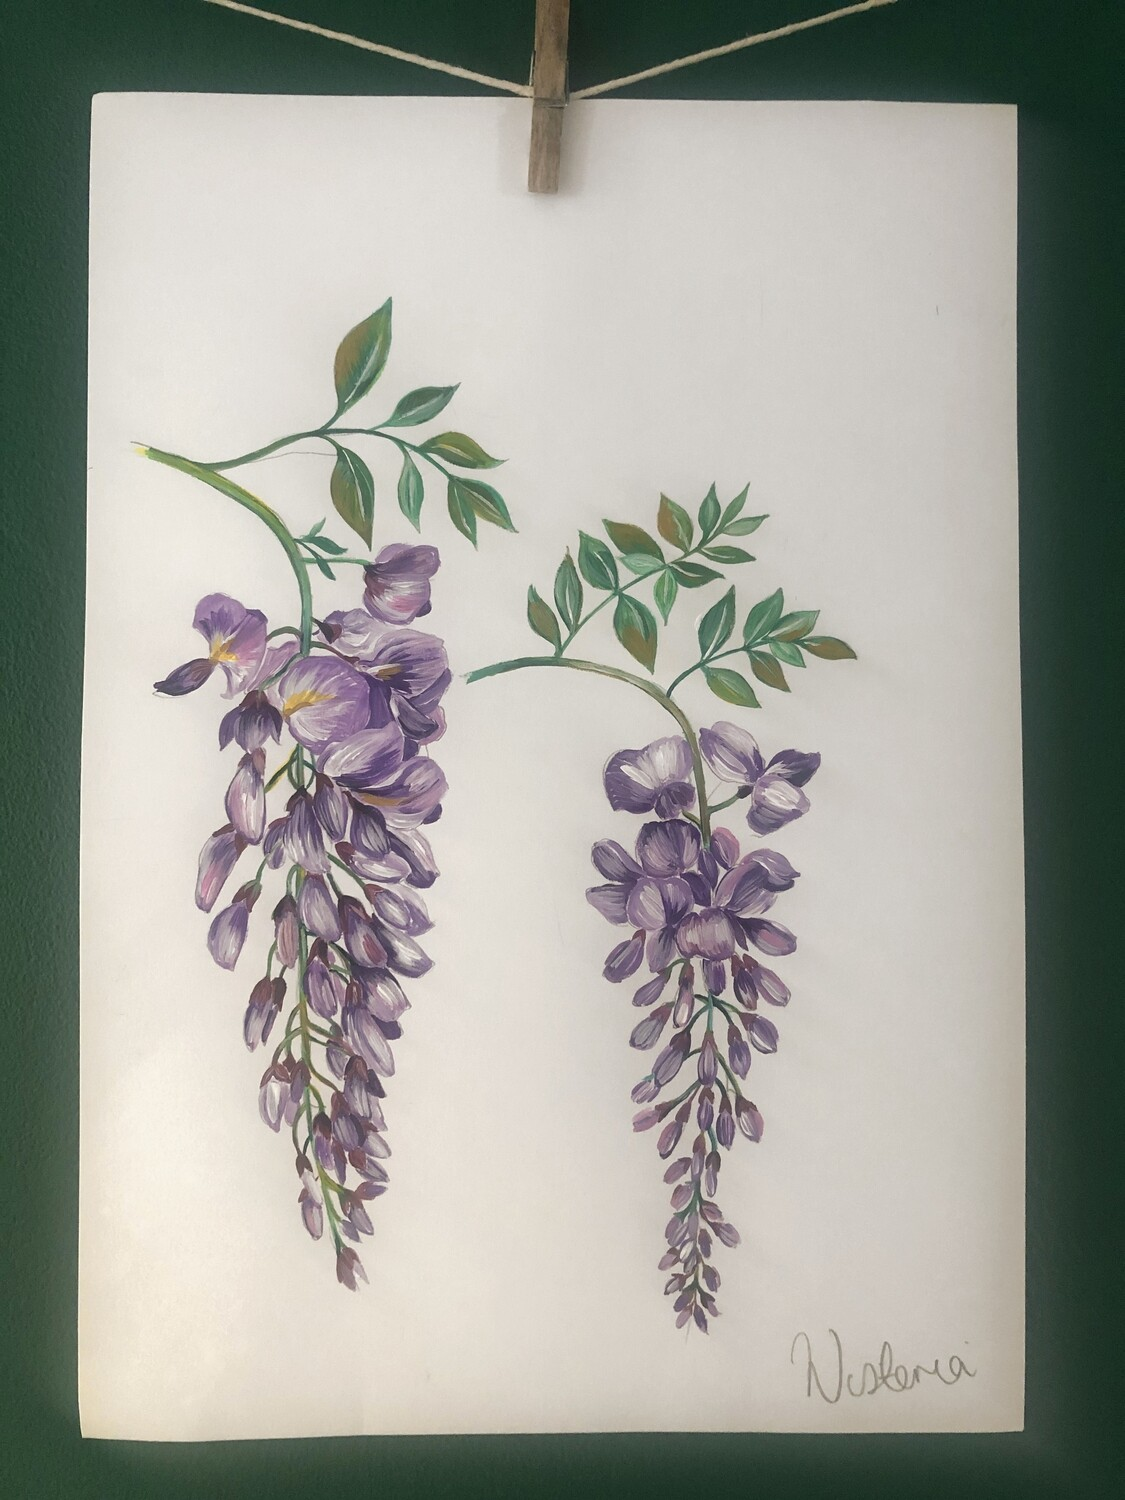 Original Wisteria painting by Victoria Sanders